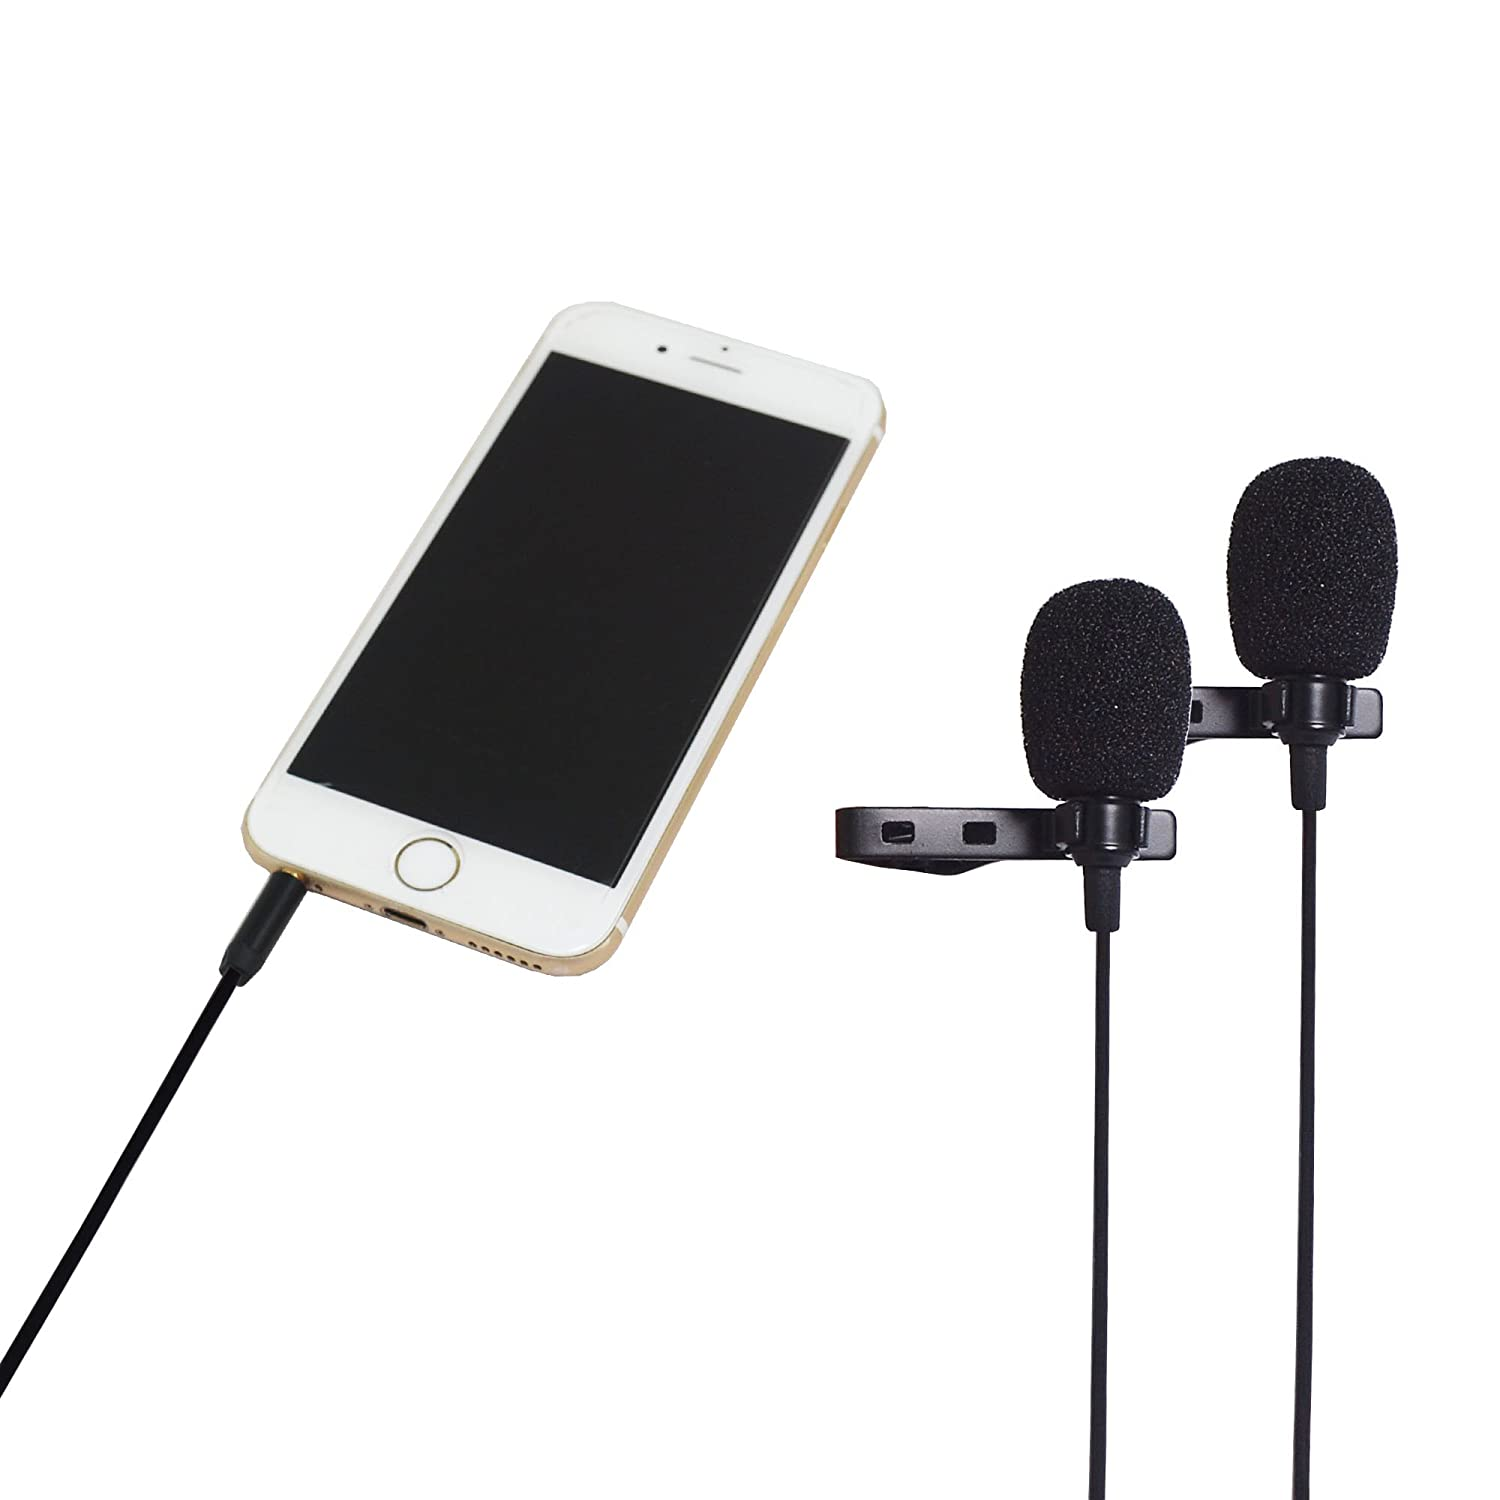 Amazon.com: Riqiorod Lavalier Lapel Microphone, Omidirectional Mic with 3.5mm TRRS Jack Female Port, for Audio Gaming Interview Podcast Youtube Smartphone ...